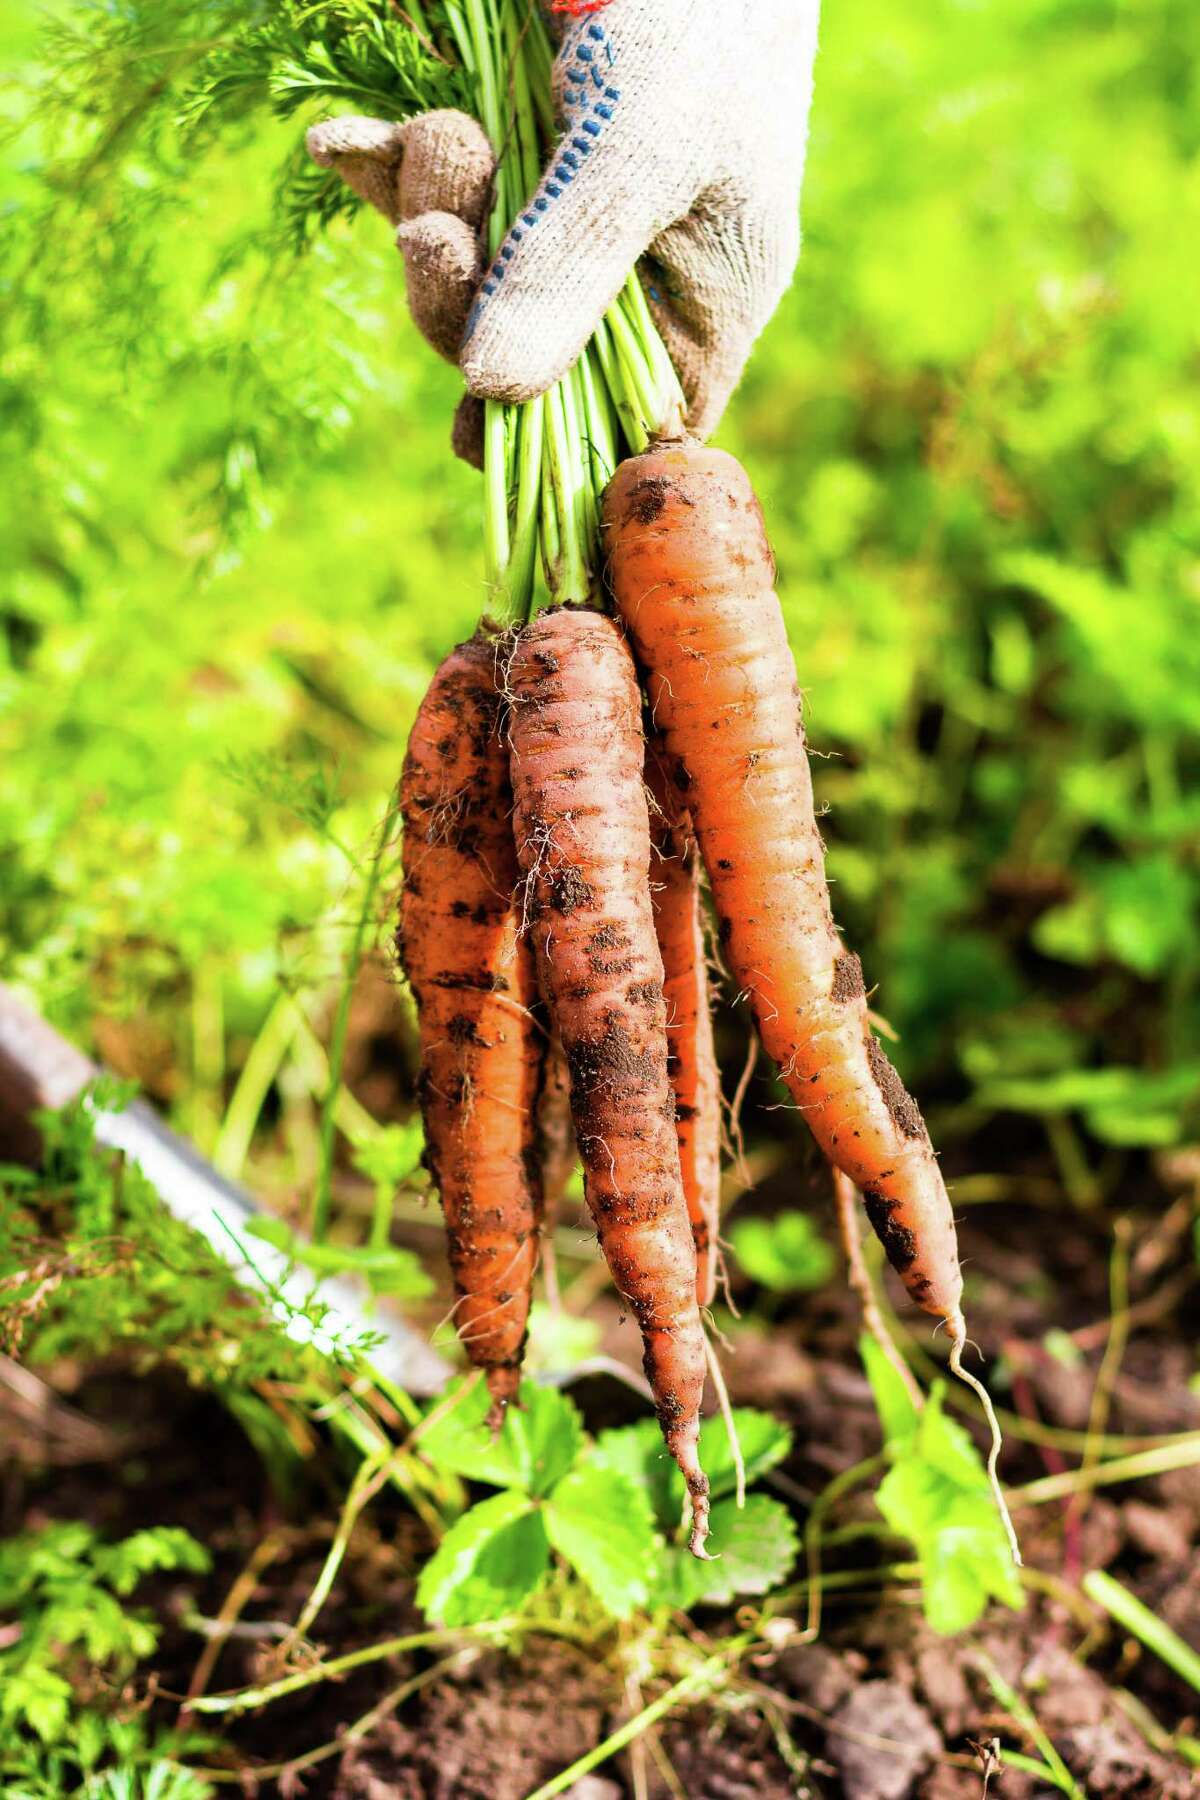 Carrots score higher on the taste test than radishes, but they are harder to grow. Carrots are more difficult because the seed is small, and it takes longer to germinate and to produce an edible product (three weeks and 75 days, respectively).